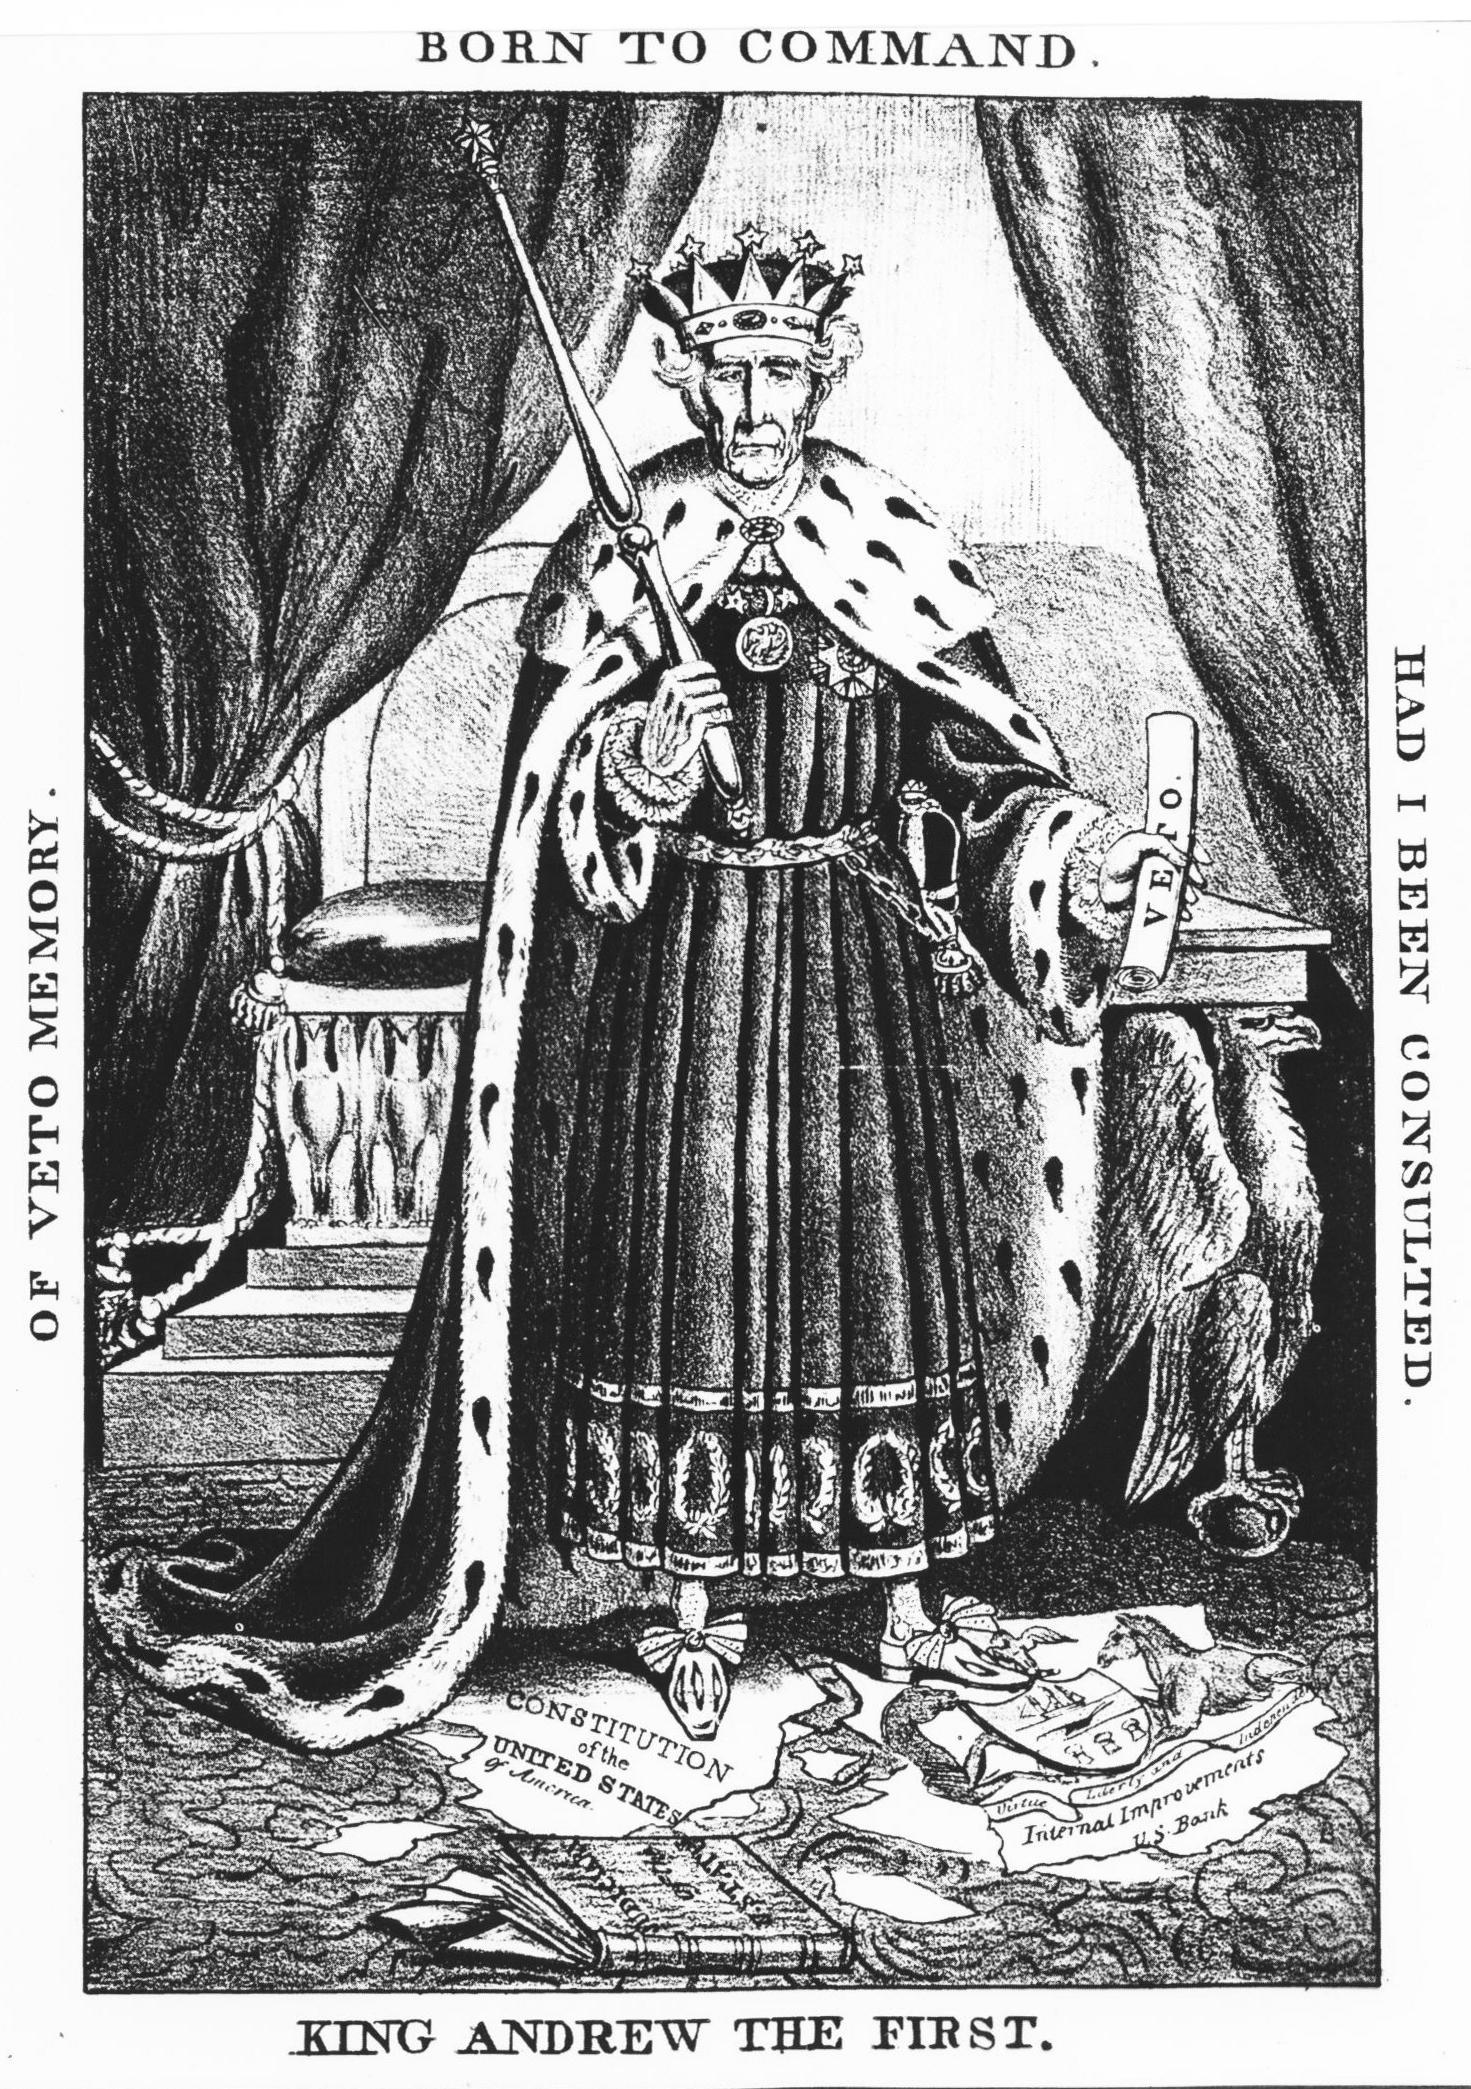 A political cartoon of Andrew Jackson dressed as a king